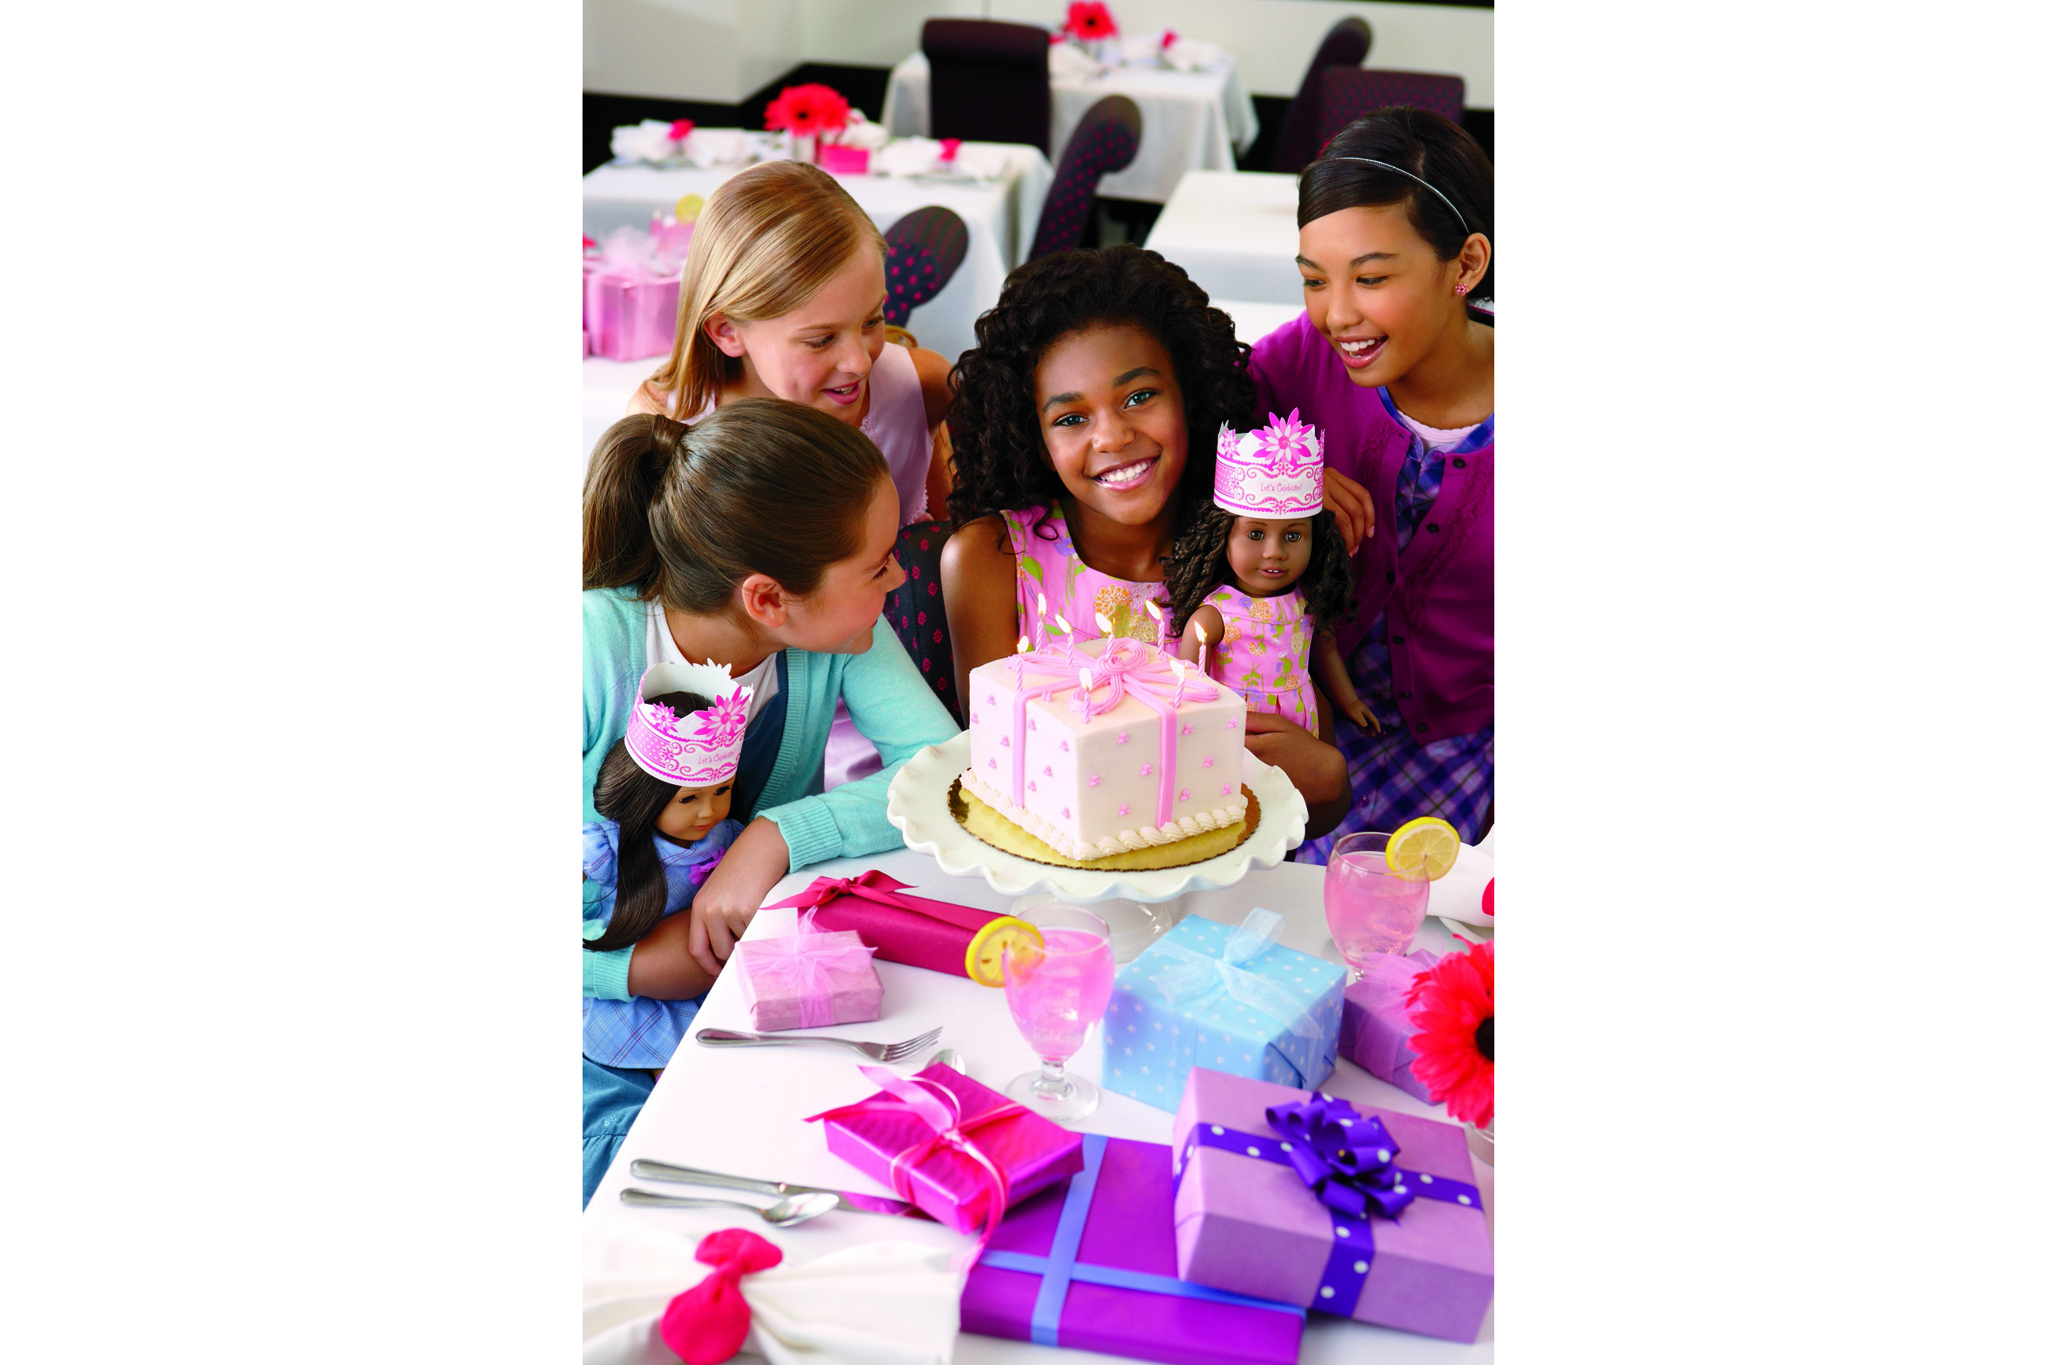 American Girl Place New York Dolls for girls café and toy store